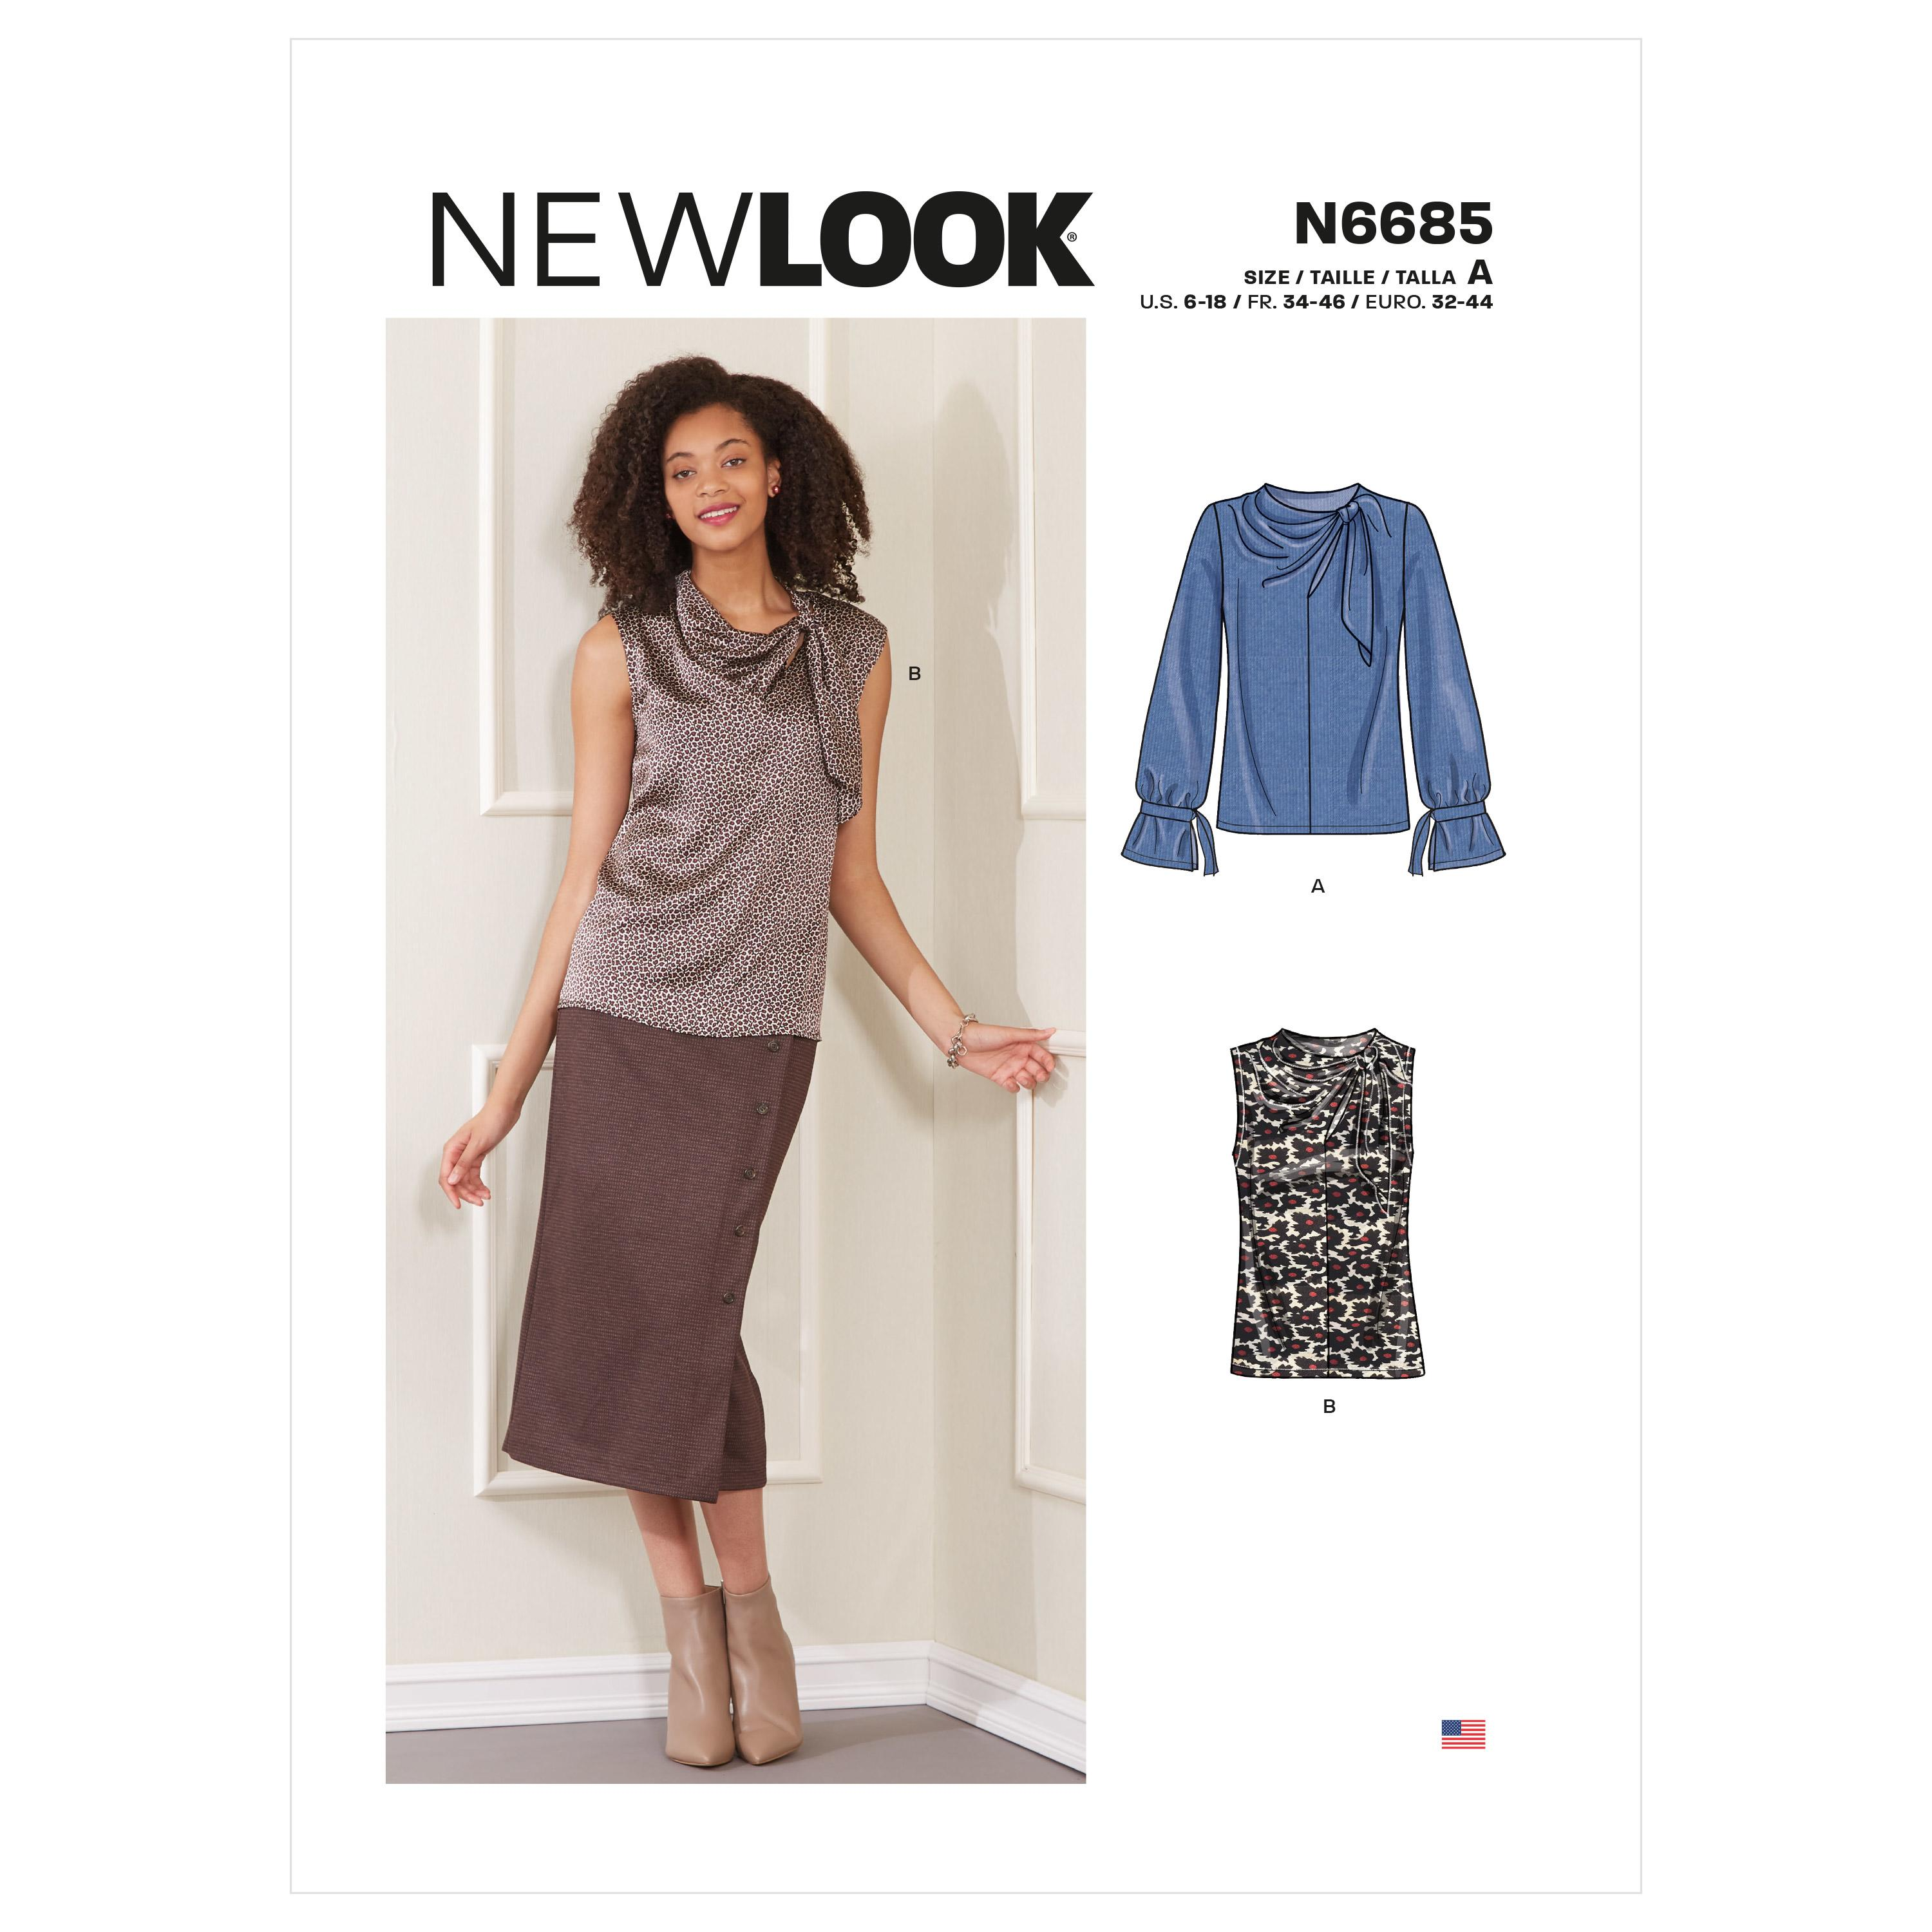 New Look Sewing Pattern N6685 Misses' Sleeveless Or Long-sleeved Tops